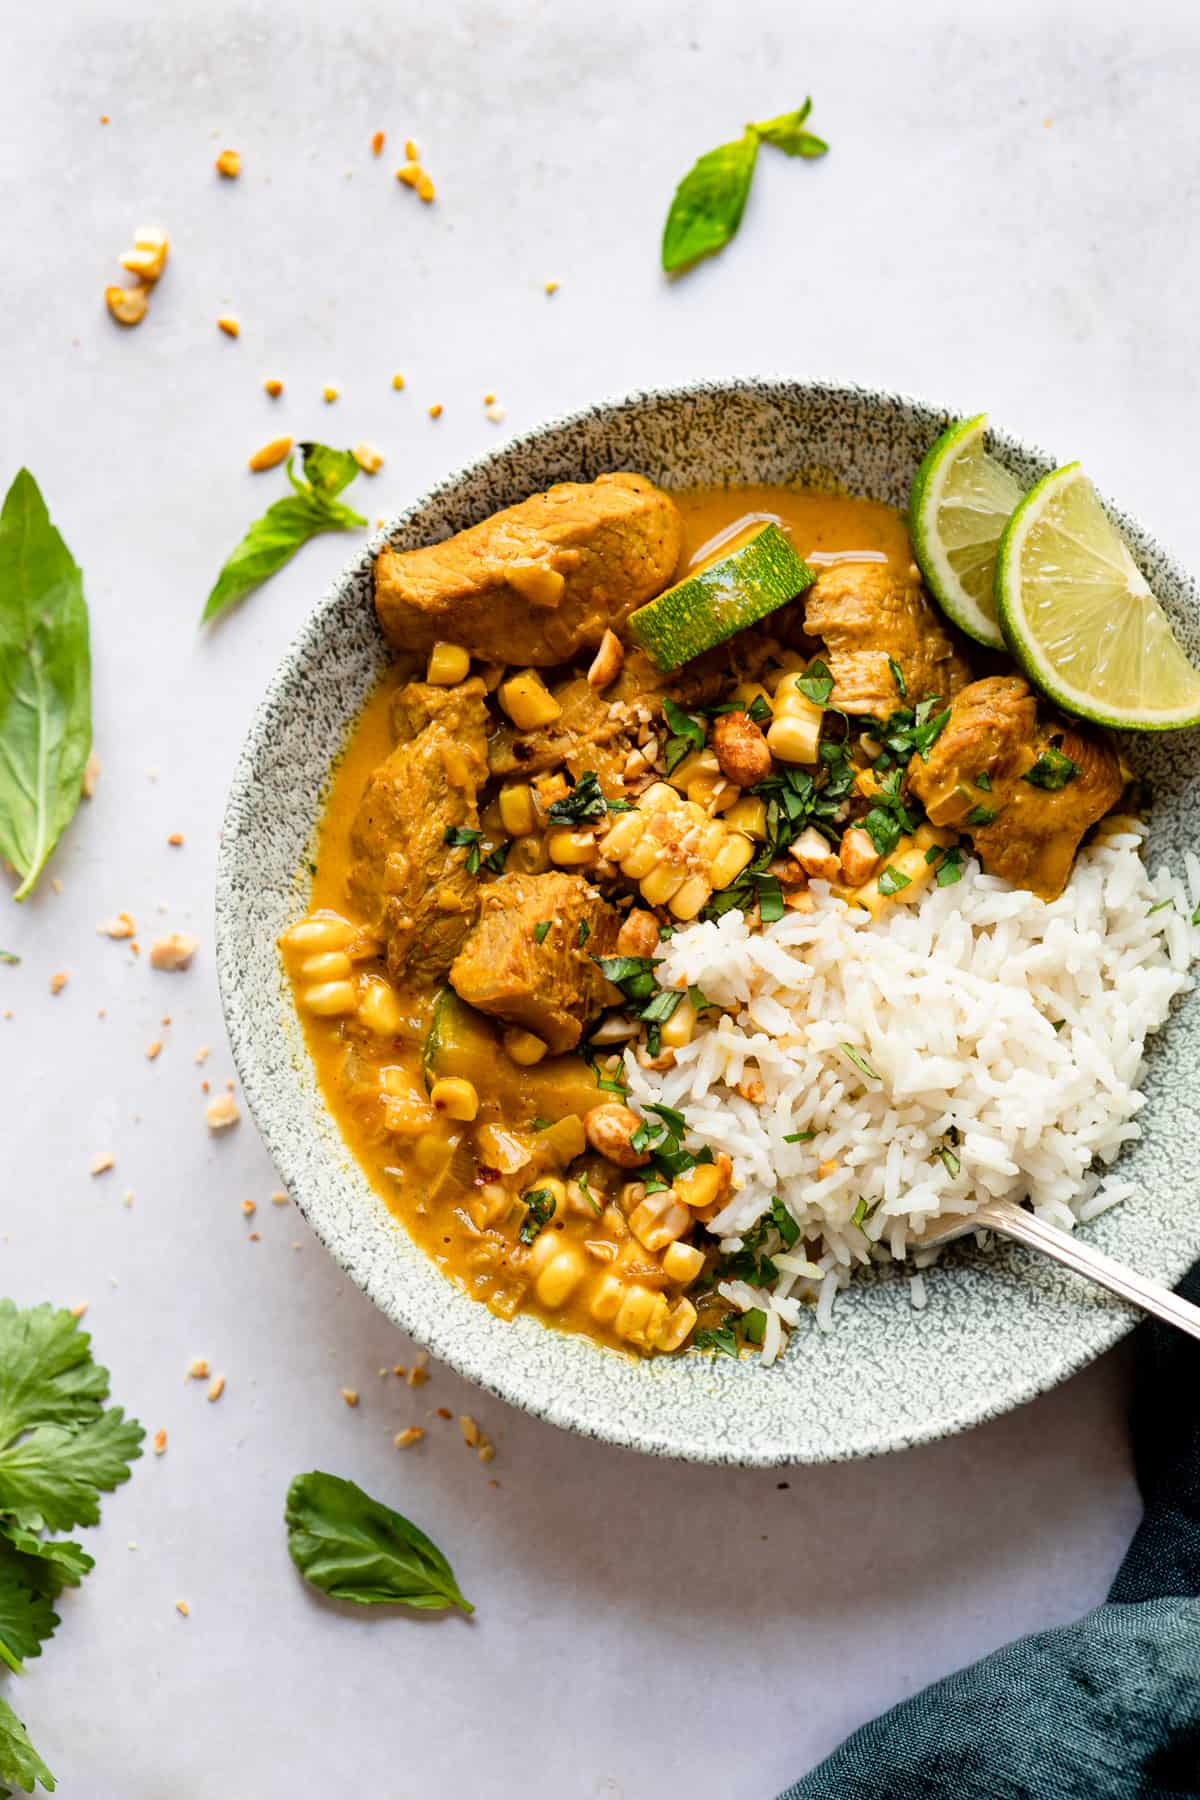 Pork curry in a blue bowl with rice and basil.